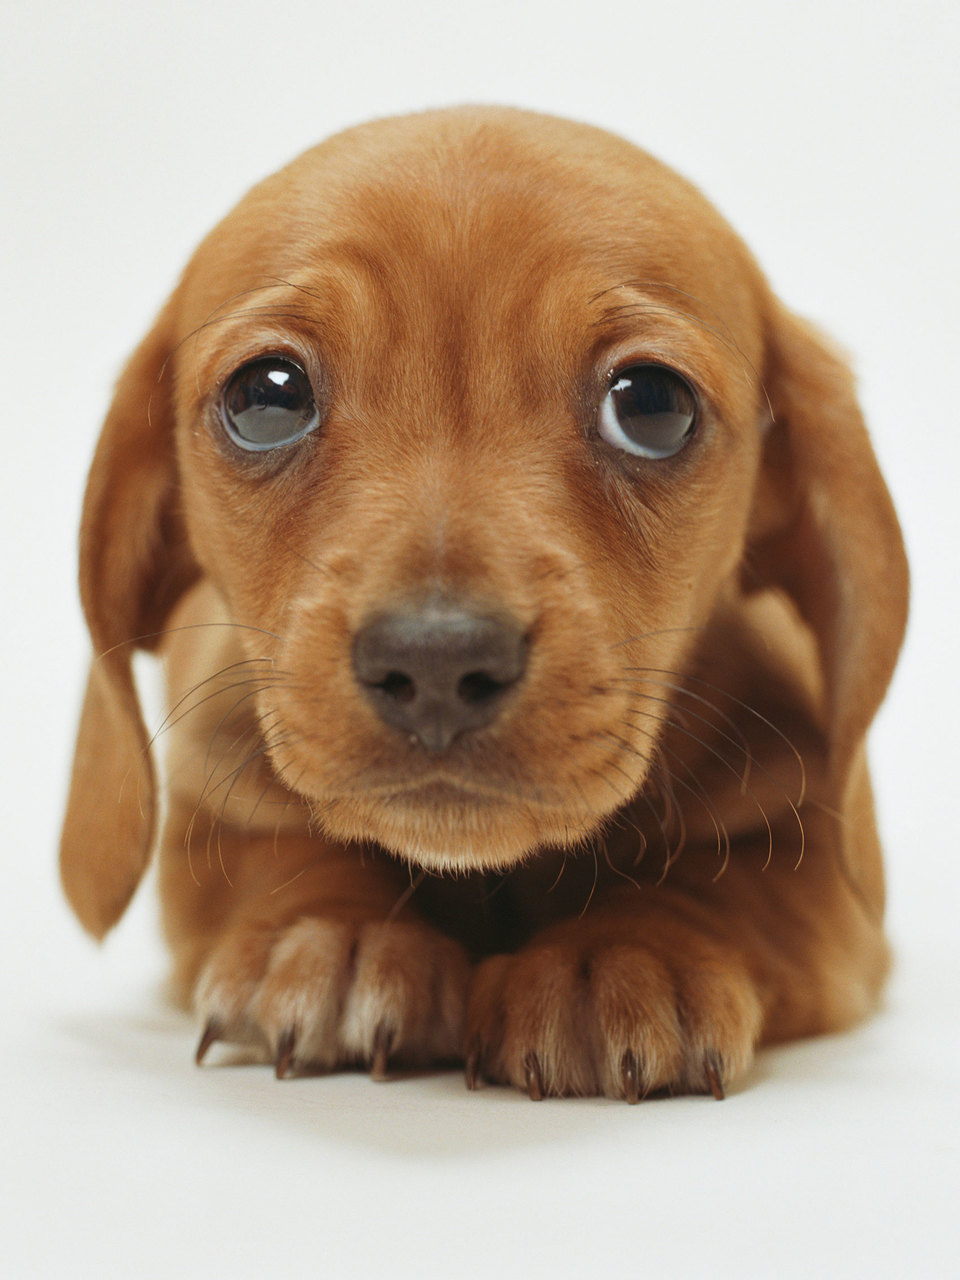 sad puppy face - Google Search on We Heart It